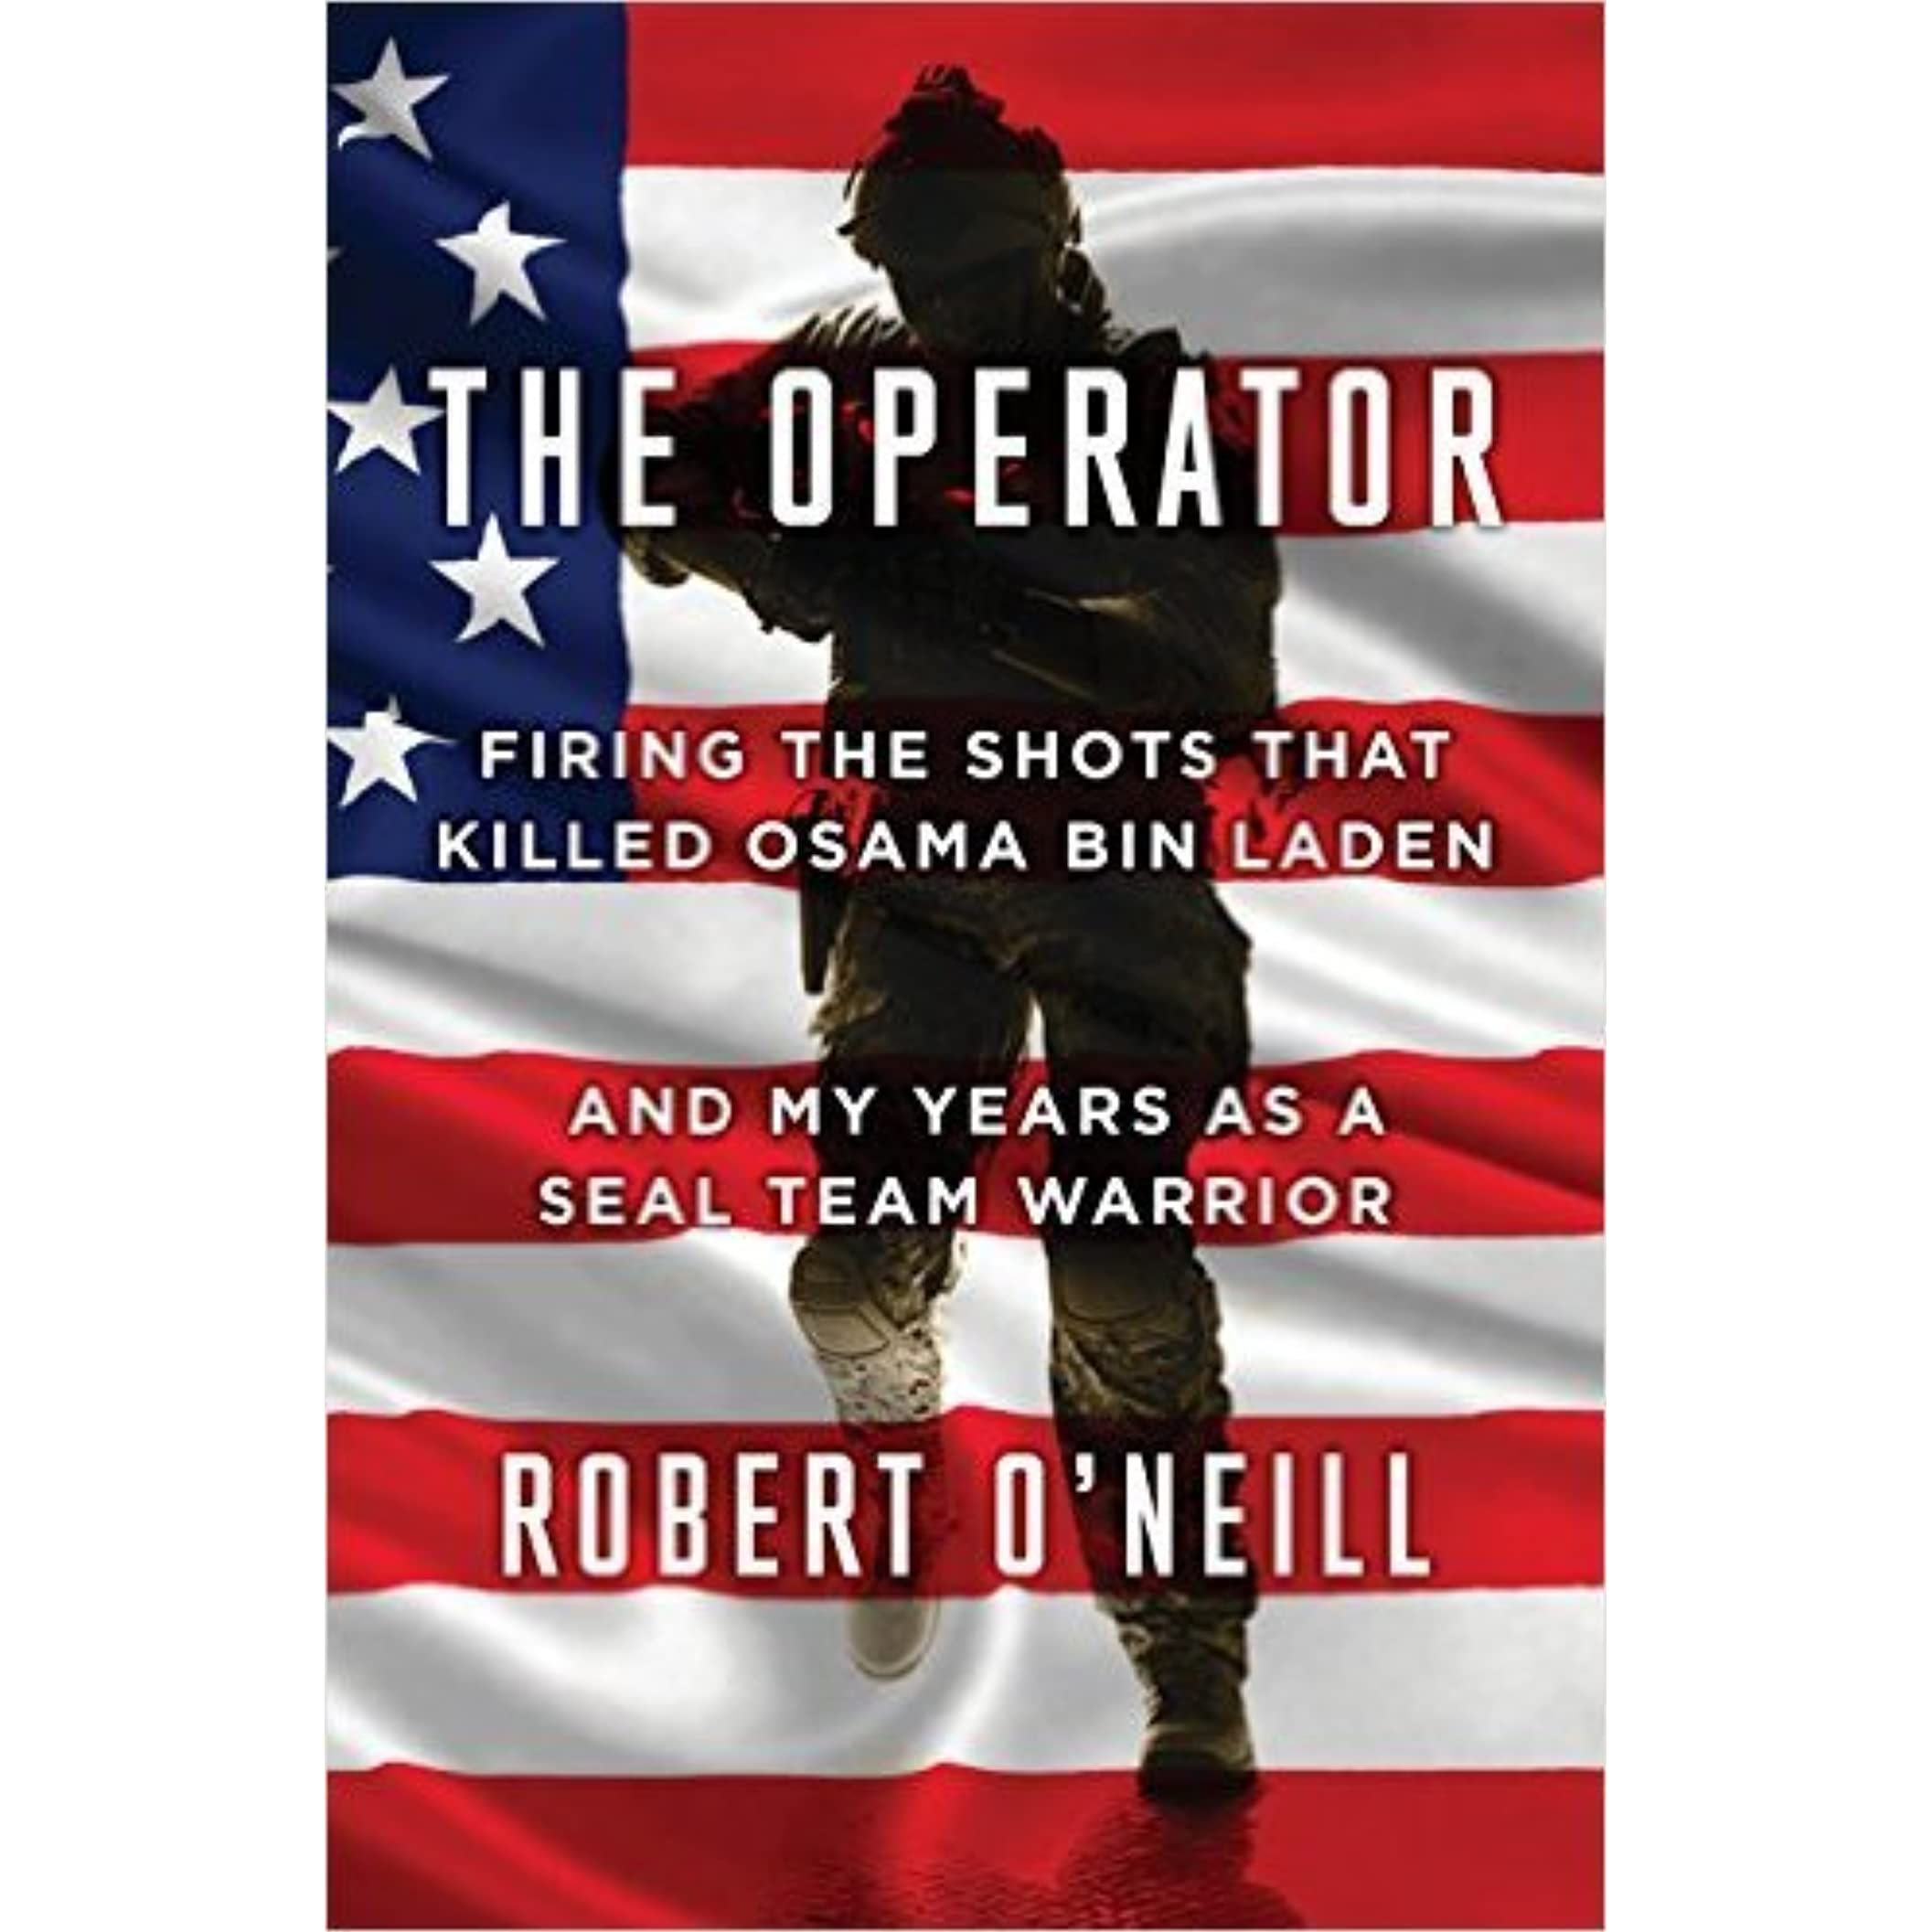 The Operator: Firing the Shots that Killed Osama bin Laden